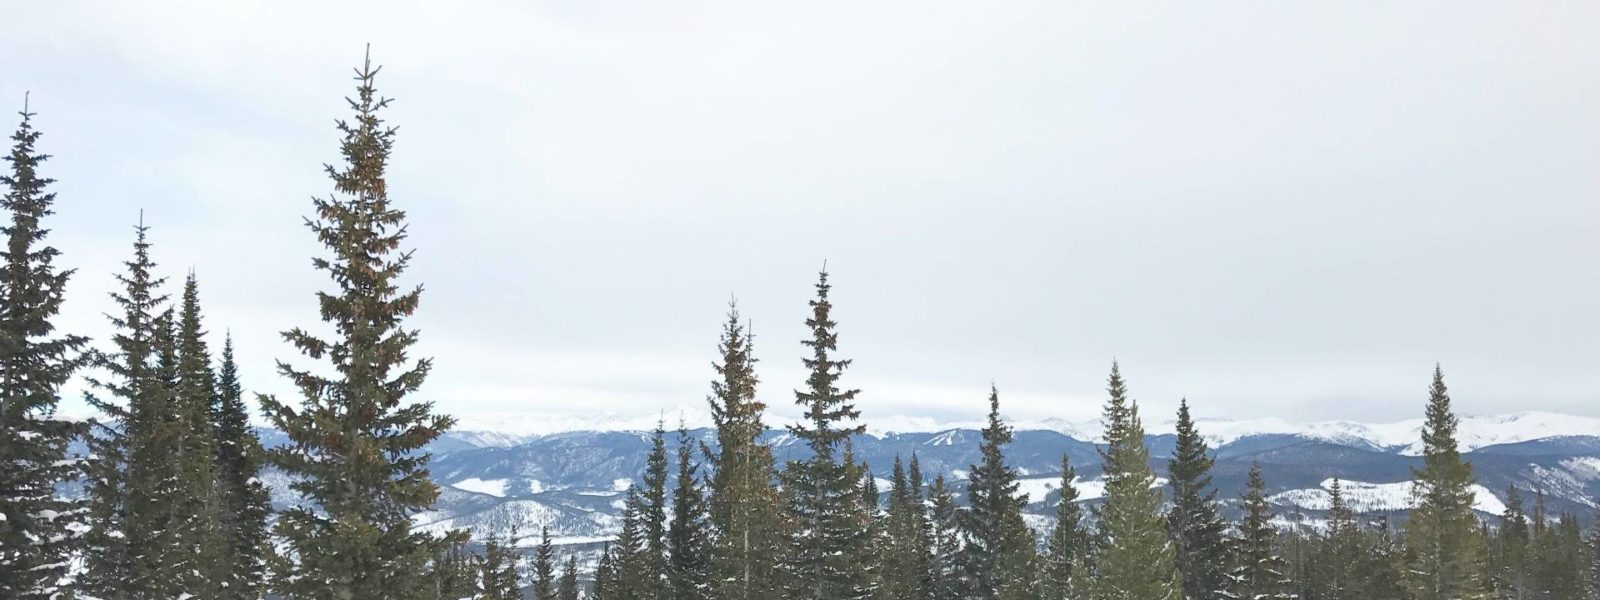 #LTcolorado // a weekend in breckenridge with @InvitedHome